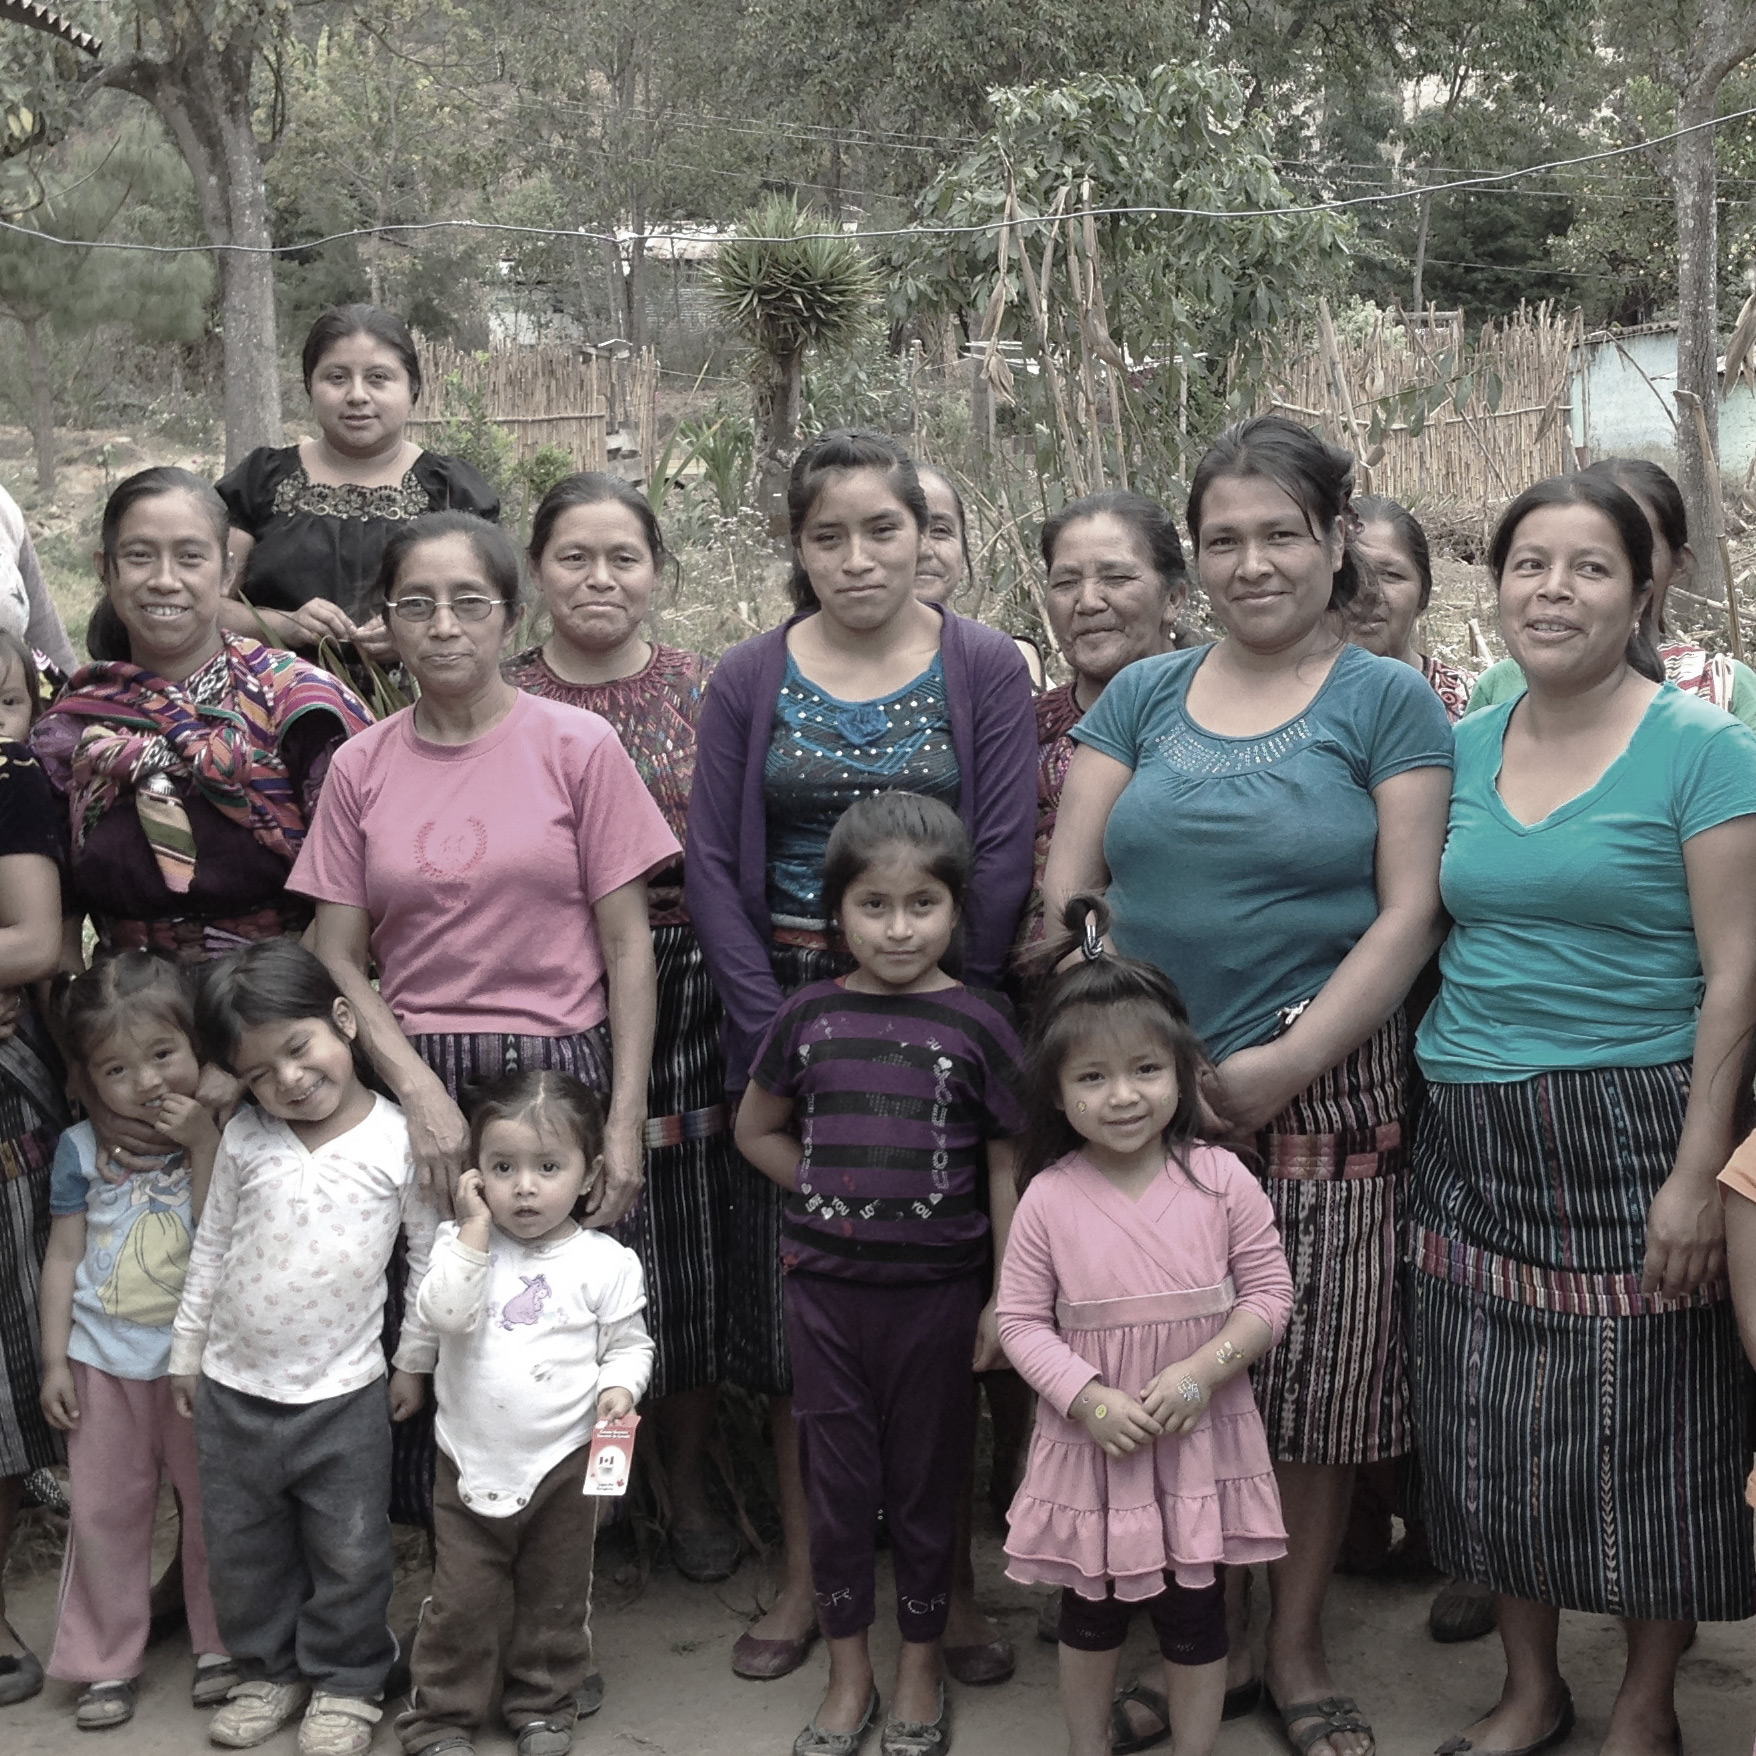 FINCA Village Bank in Guatemala